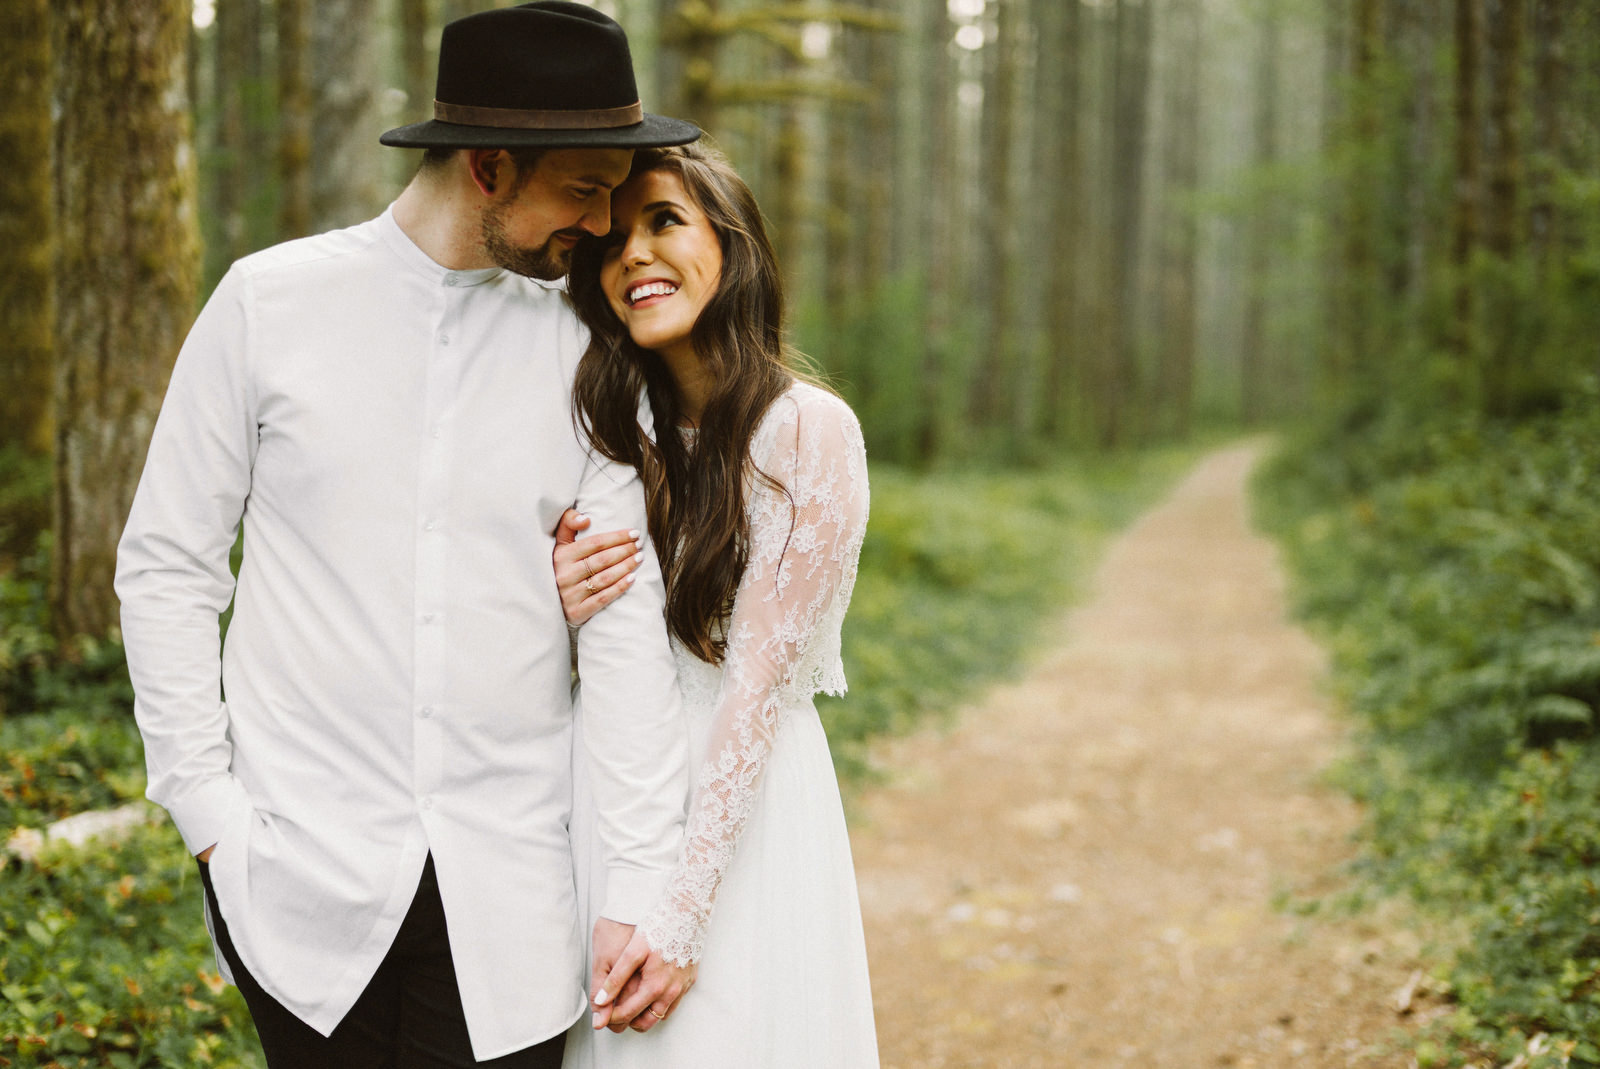 athena-and-camron-seattle-elopement-wedding-benj-haisch-rattlesnake-lake-christian-couple-goals19